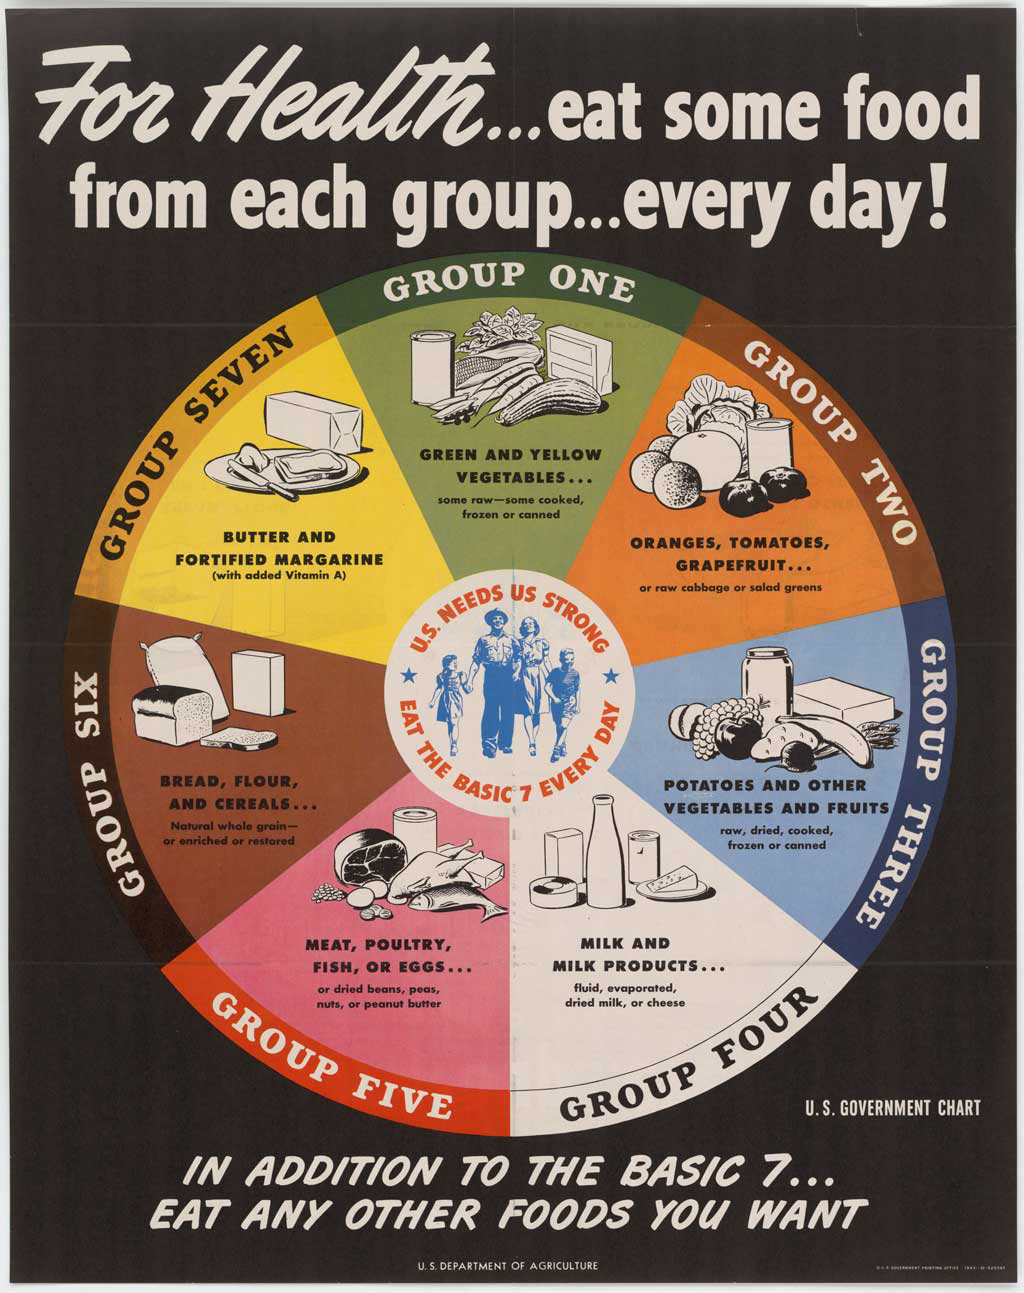 The Basic 7: In 1943, the USDA introduced this food guide. Released during World War II, it was aimed at helping to maintain nutrition standards amid wartime food shortages. Notice butter's place of visual prominence.